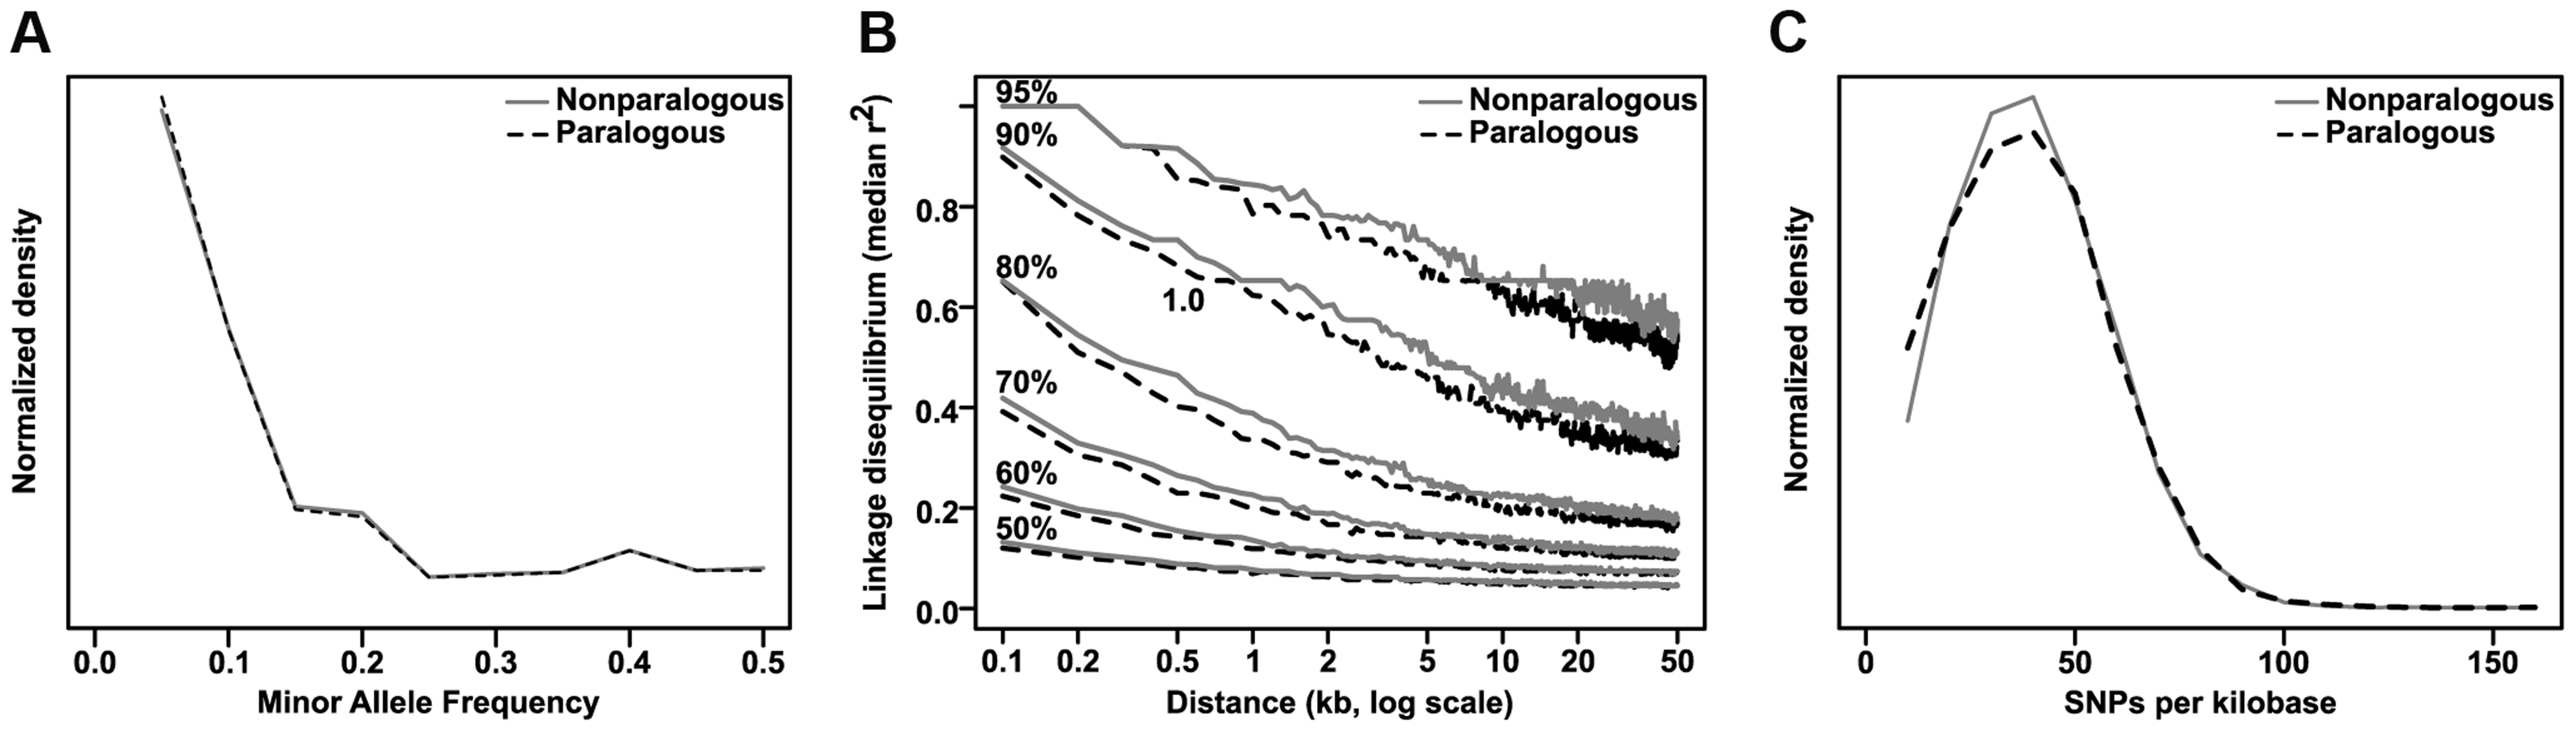 Comparison of paralogous to nonparalogous genes.